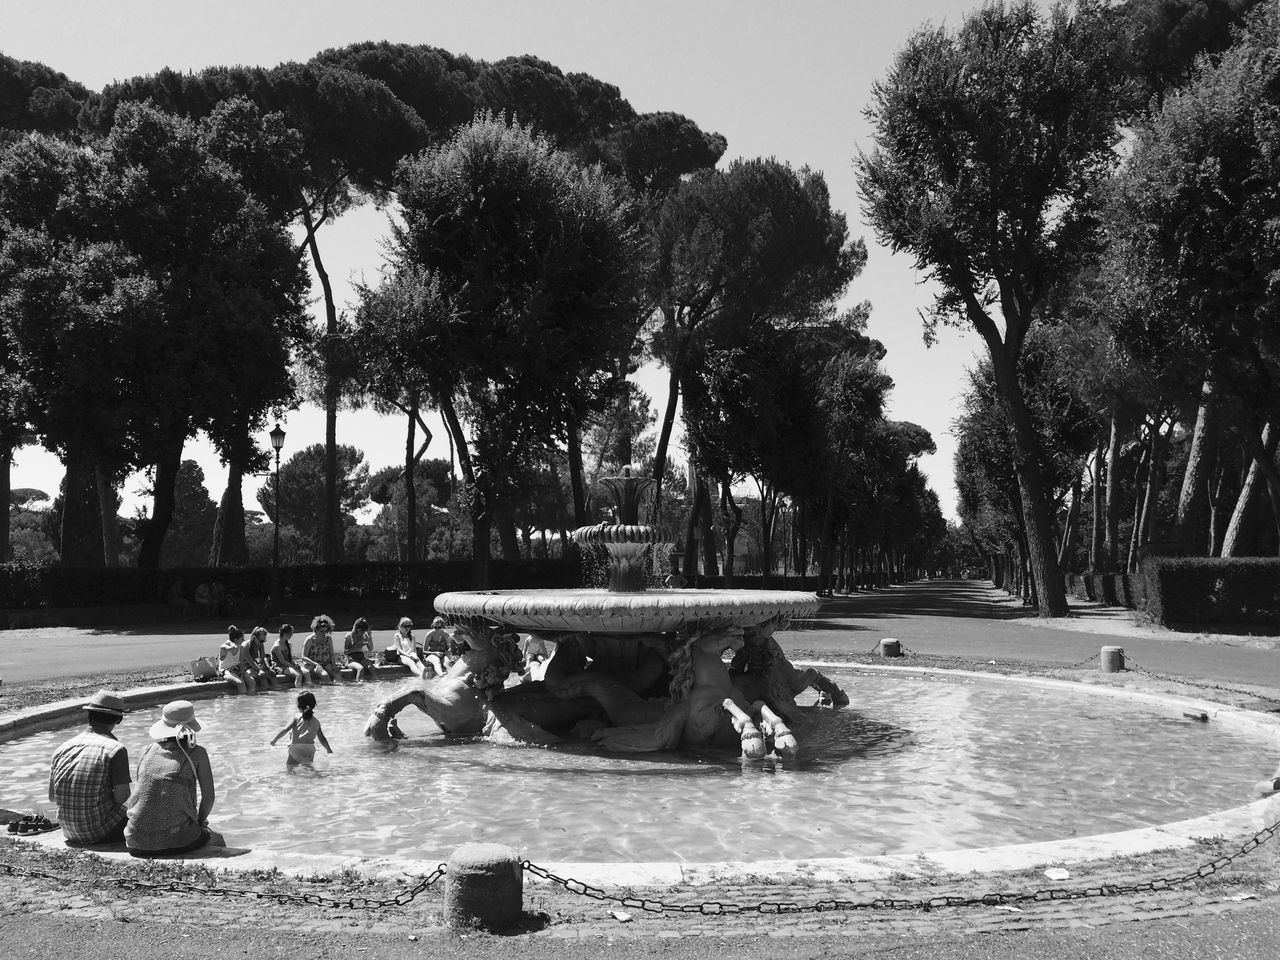 Blackandwhite Child Childhood Couple Day Fountain Fountains Italia Italy Italy🇮🇹 Large Group Of People Monochrome Nature Outdoors Palm Tree Park Romance Rome Rome Italy Rome Italy🇮🇹 Rome, Italy Summer Tree Vacation Water